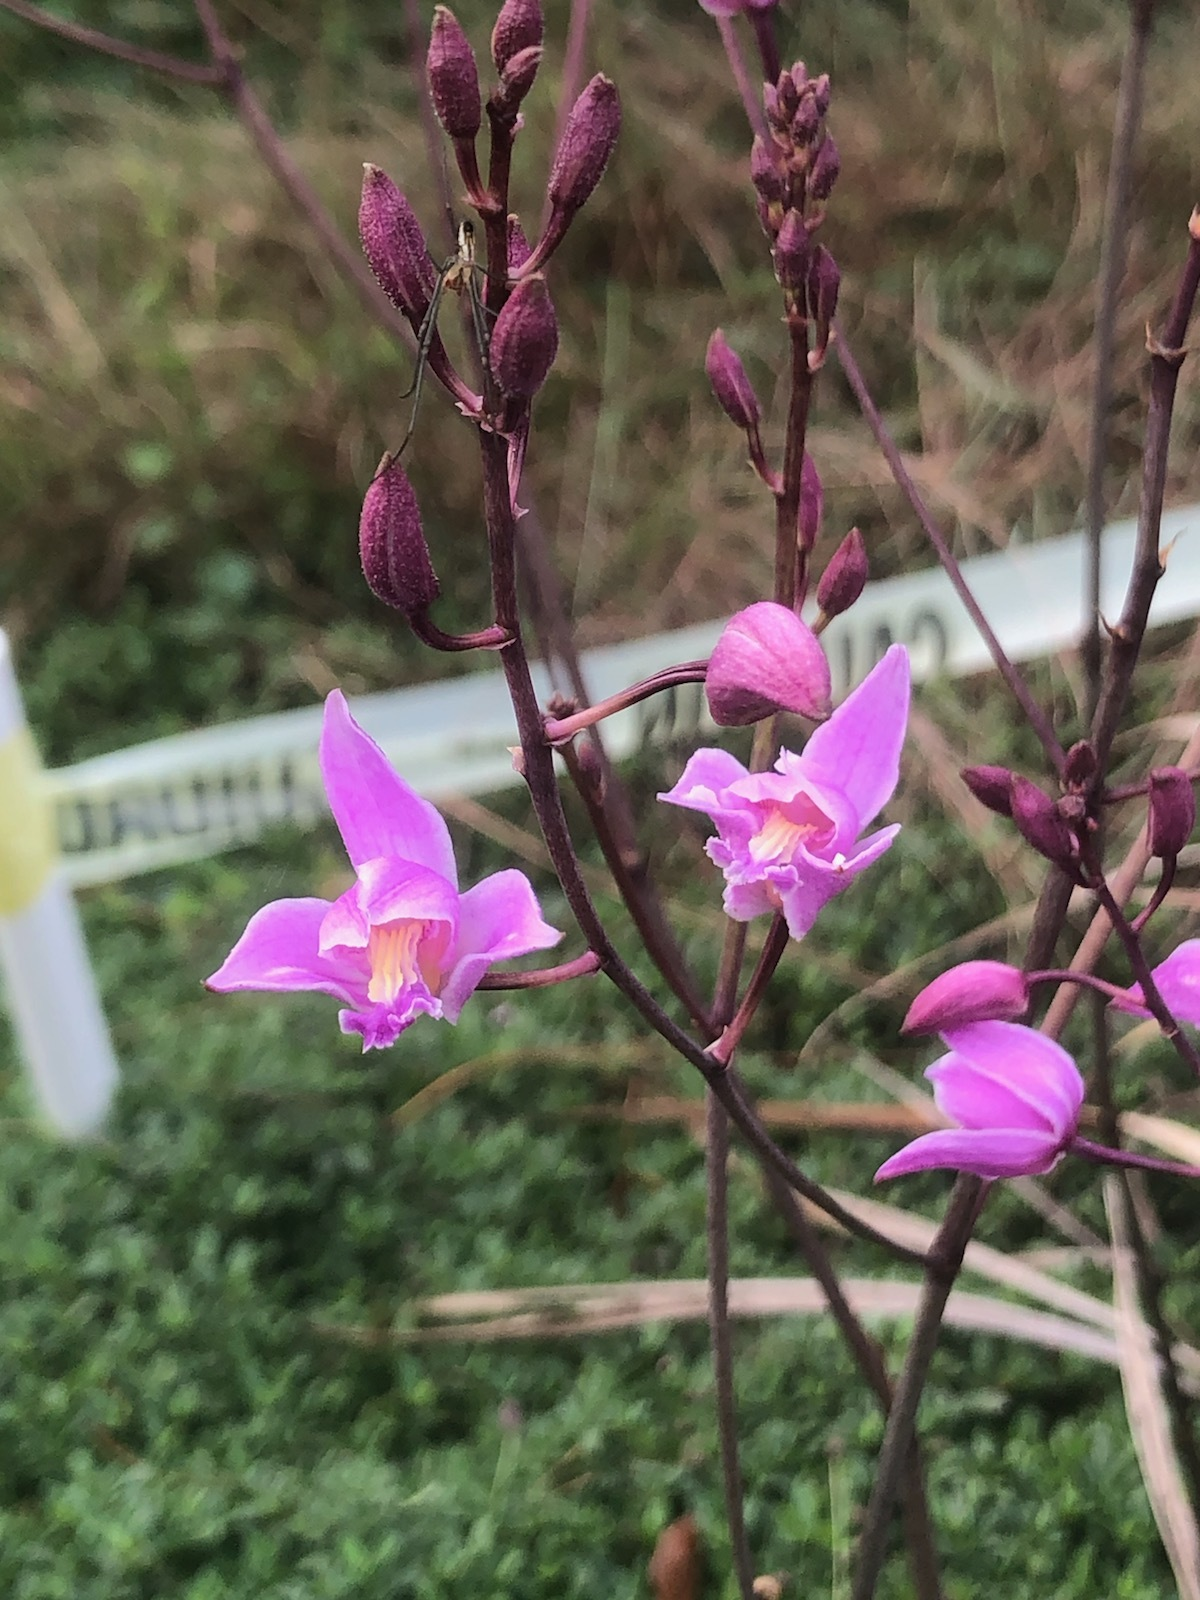 Bletia purpurea  A terrestrial orchid, commonly called the pine pink orchid. It's native to the highly endangered pine rockland habitat and cypress swamps and is threatened in the state of Florida.  Photo: Dr. Jason Downing